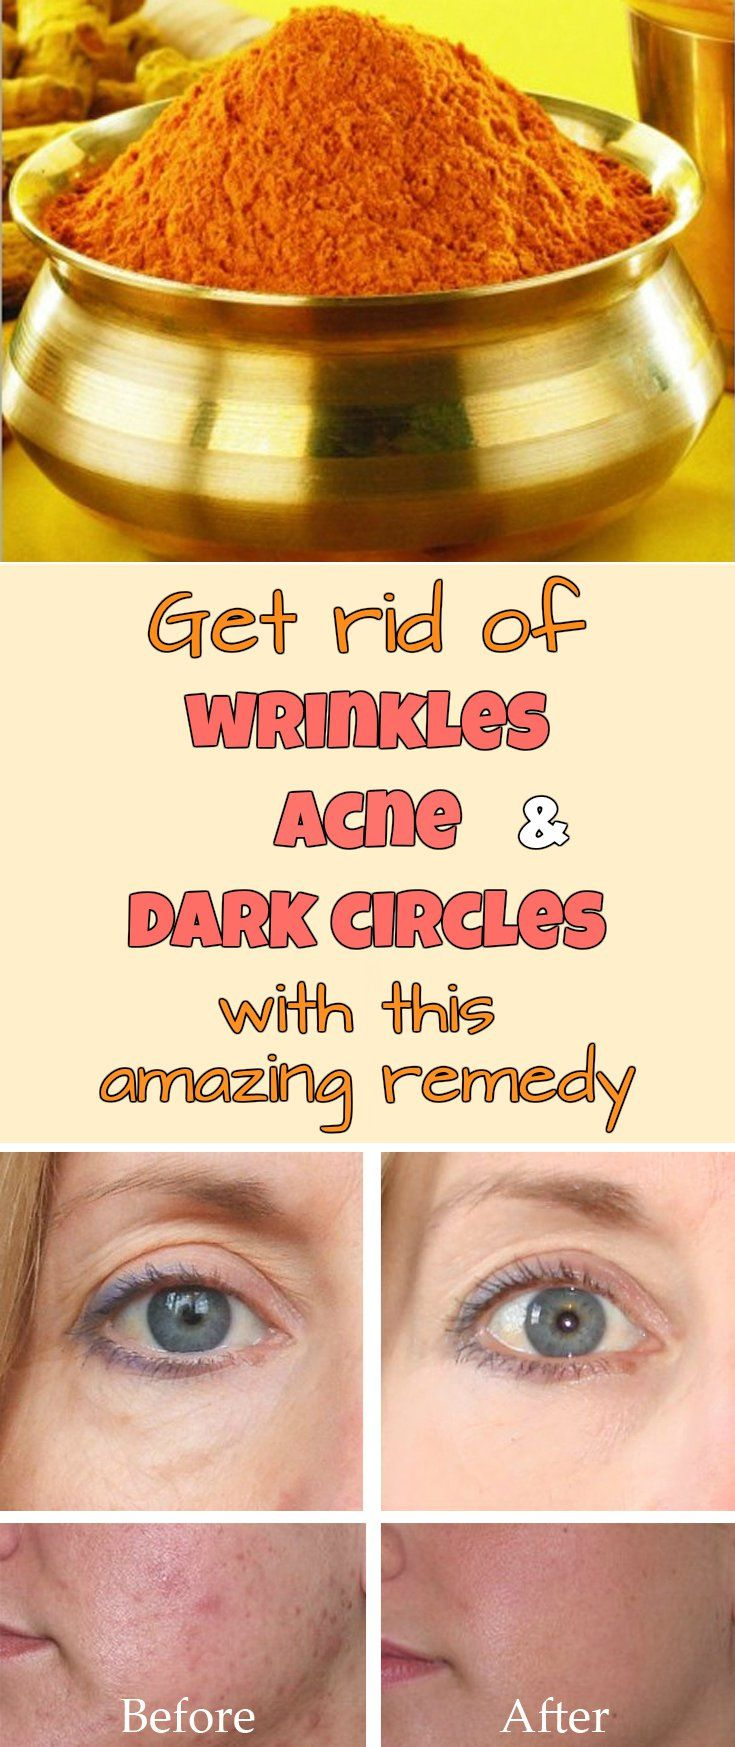 how to get rid of wrinkles on shoes